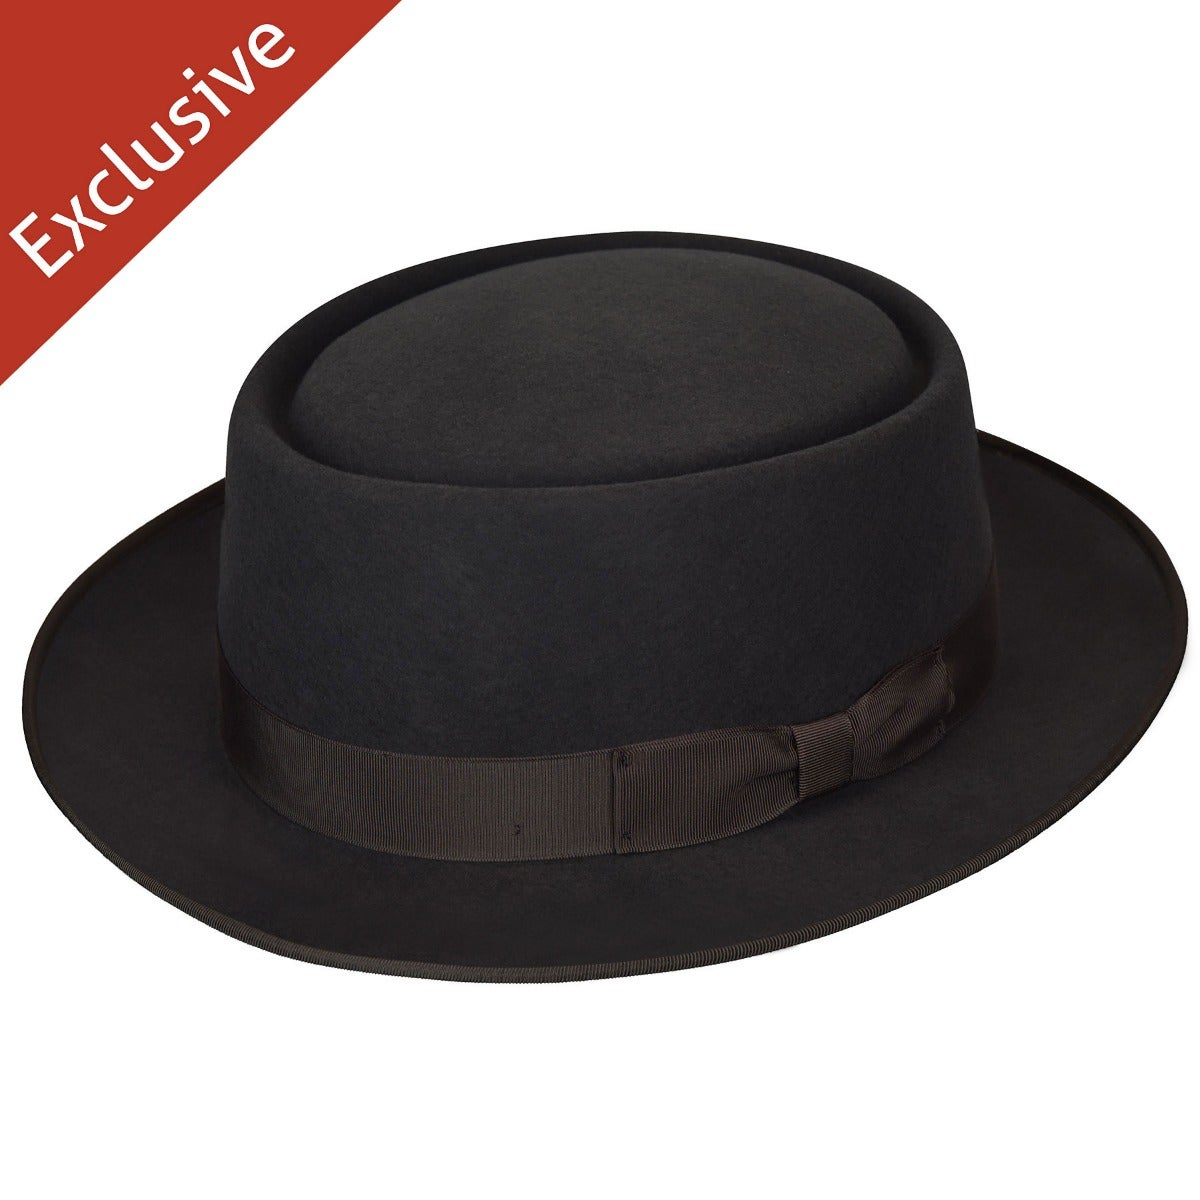 1940s Mens Hats | Fedora, Homburg, Pork Pie Hats Danger Pork Pie - Exclusive $39.99 AT vintagedancer.com